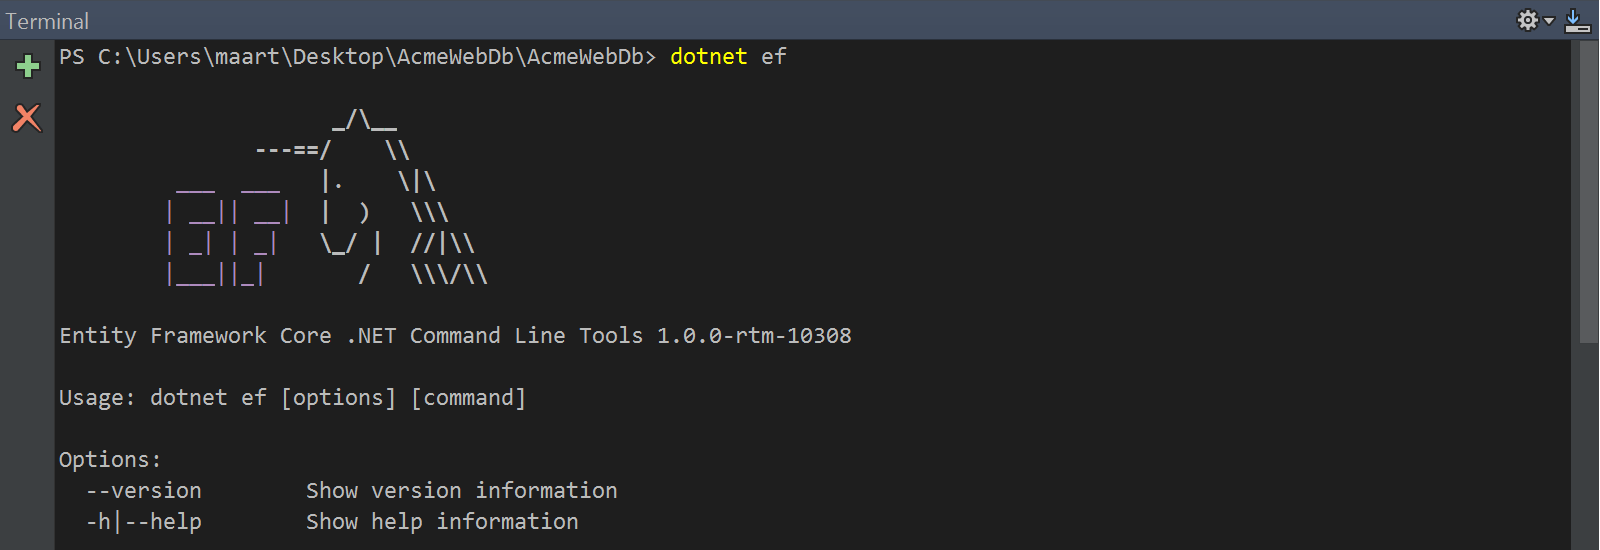 Usign Rider terminal to run Entity Framework command line tools